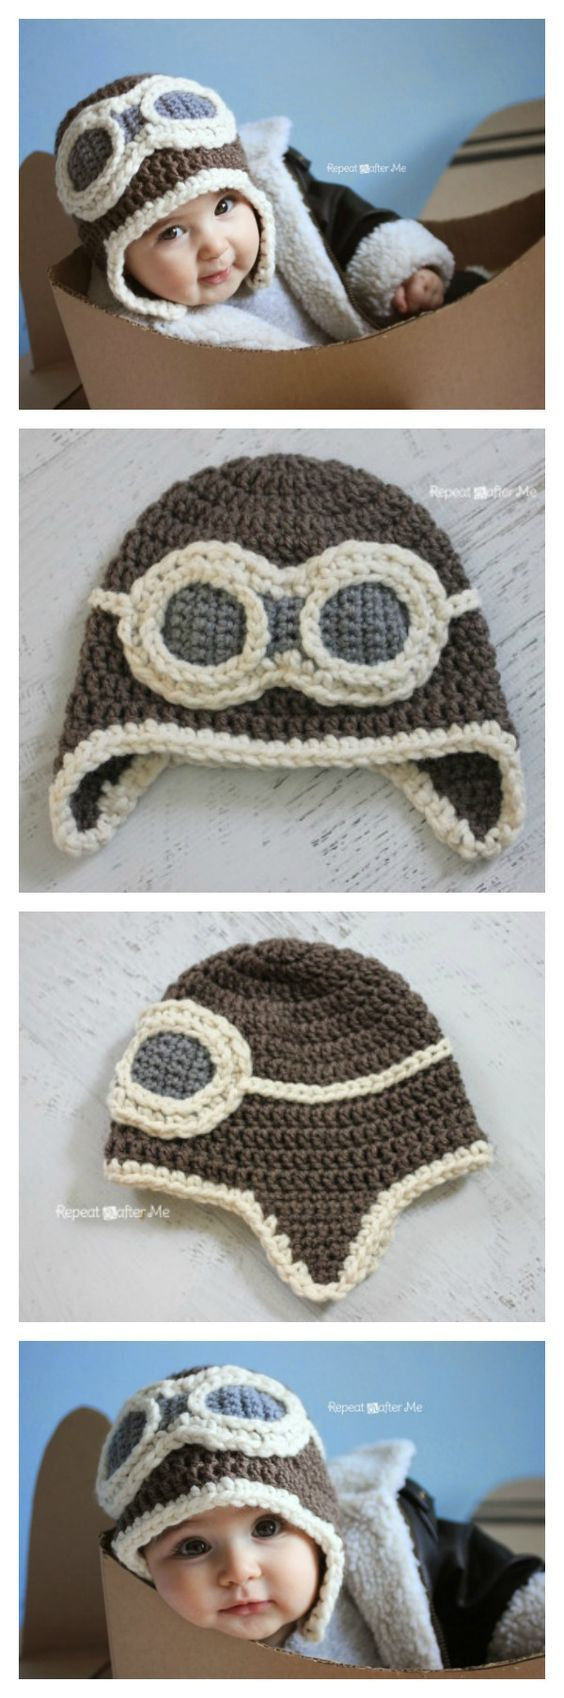 Aviator Hat FREE Crochet Pattern: